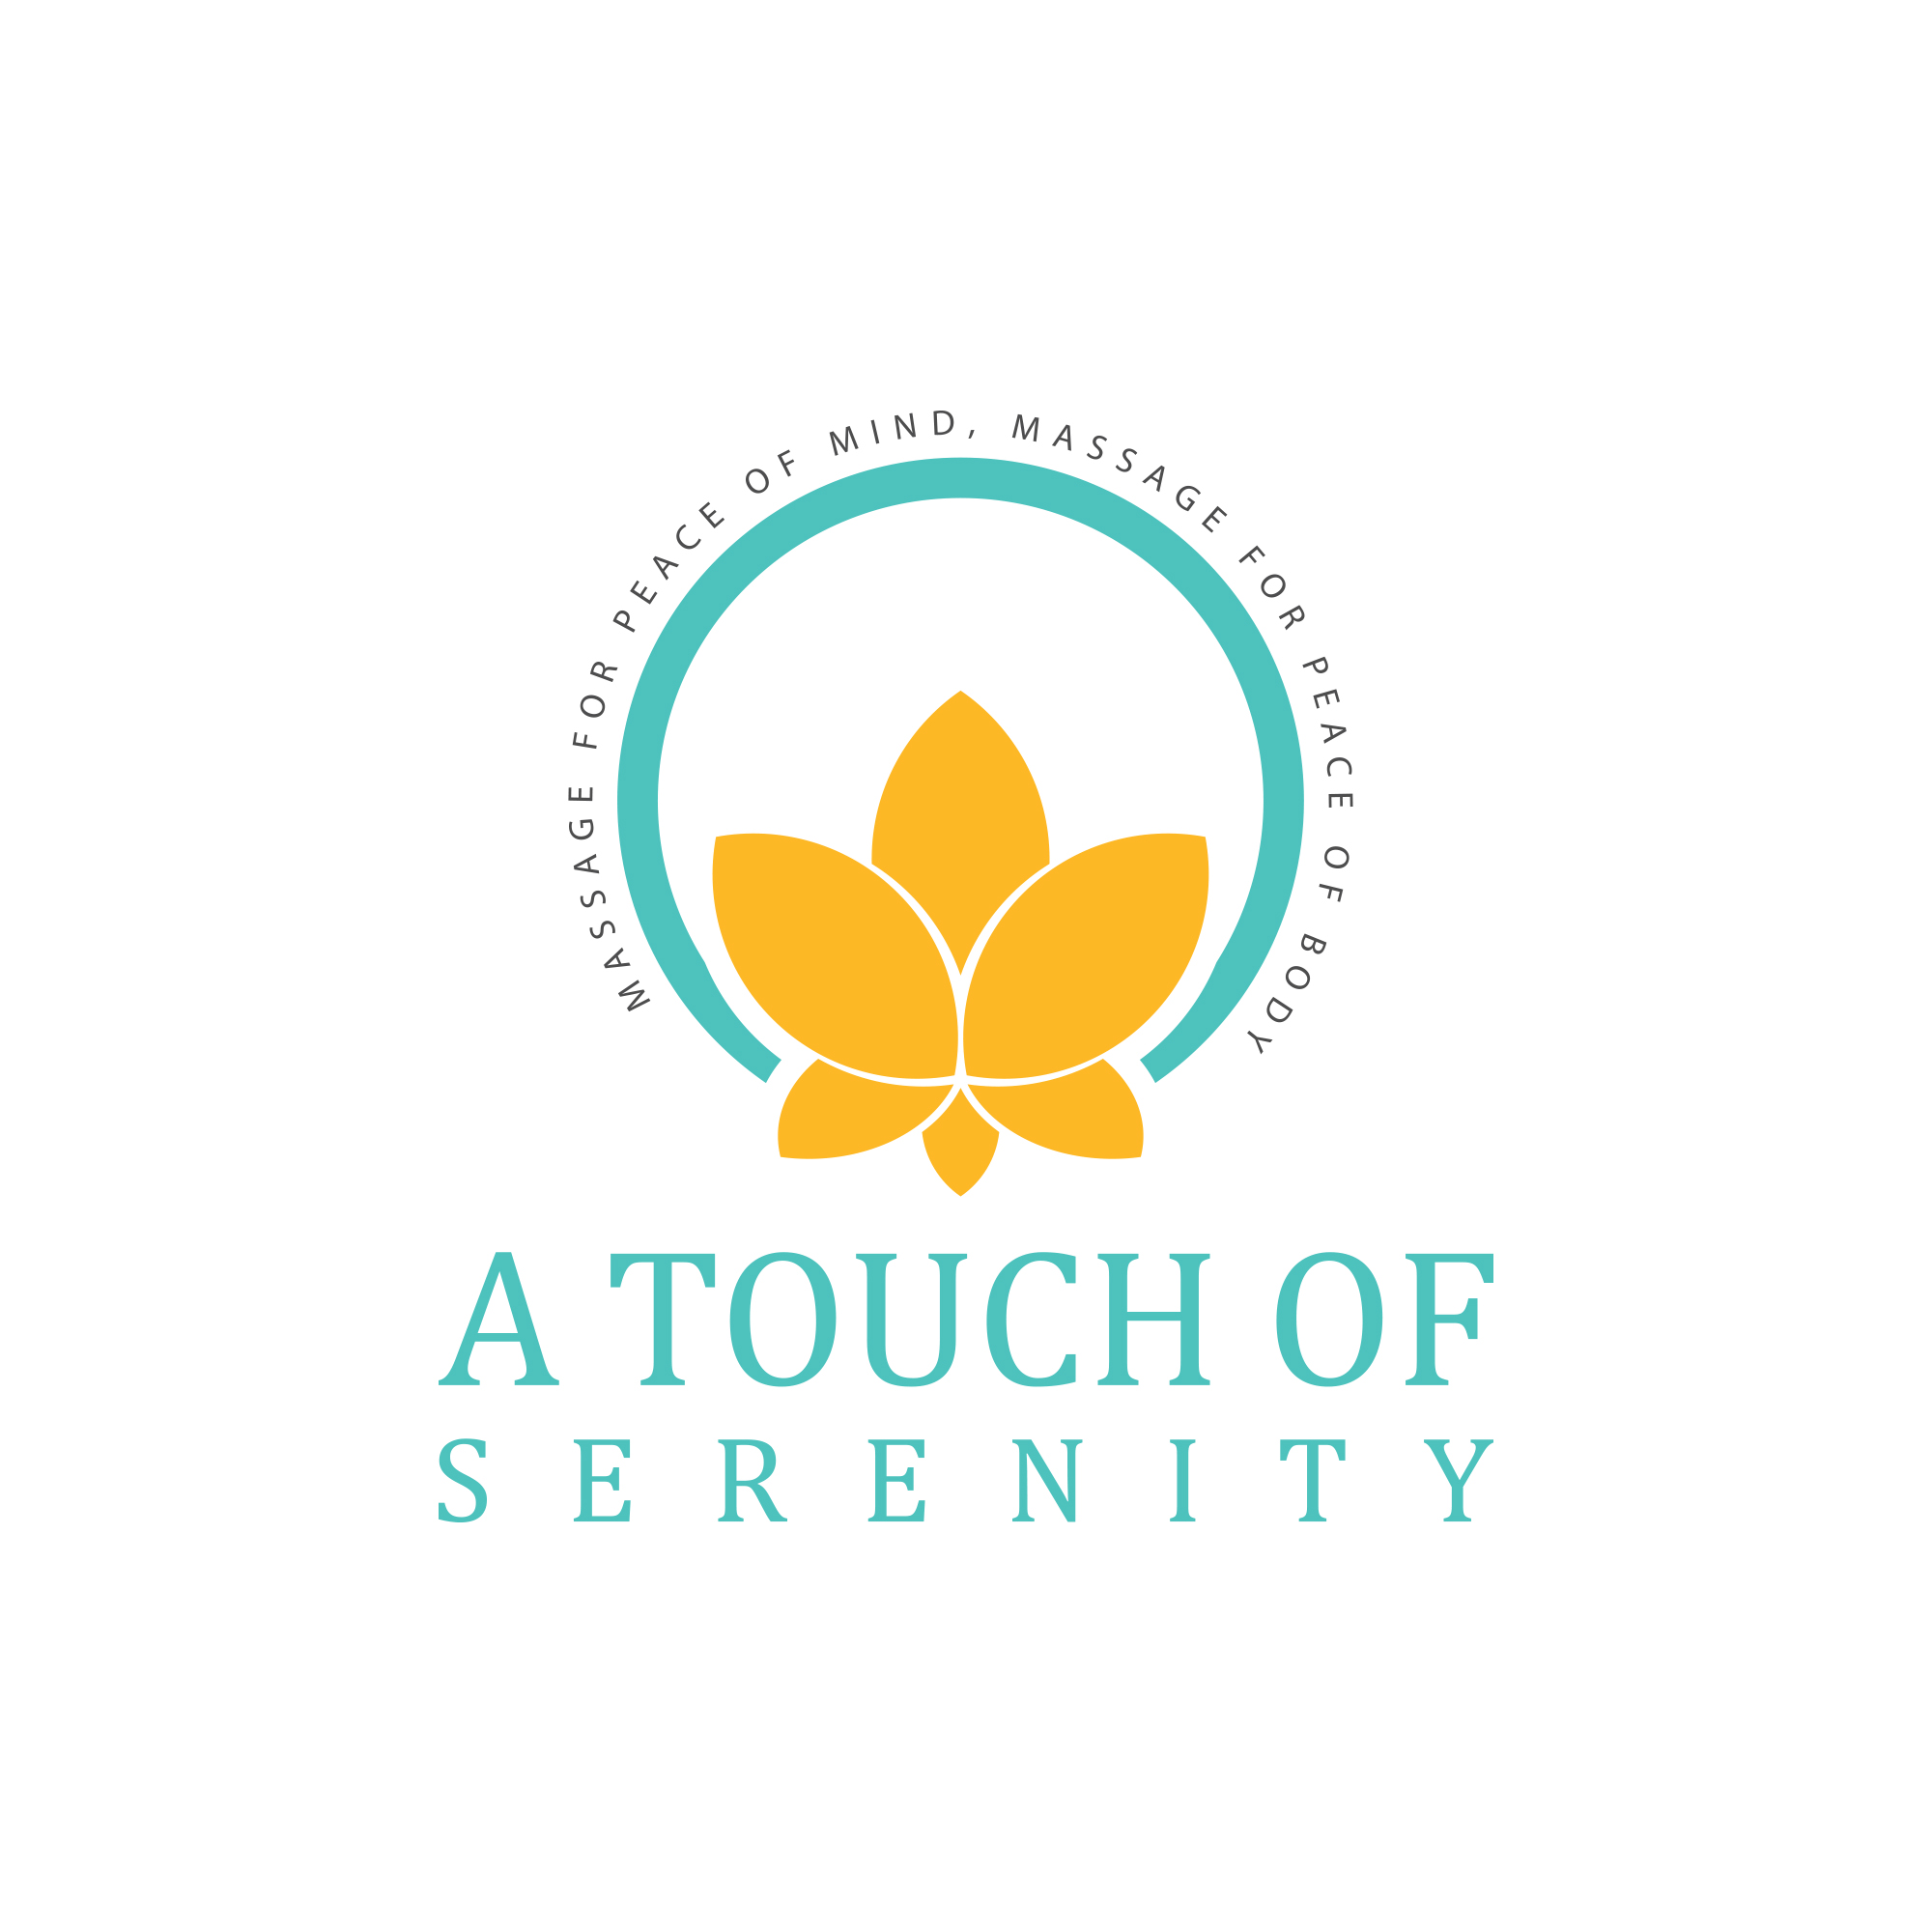 A Touch of Serenity logo